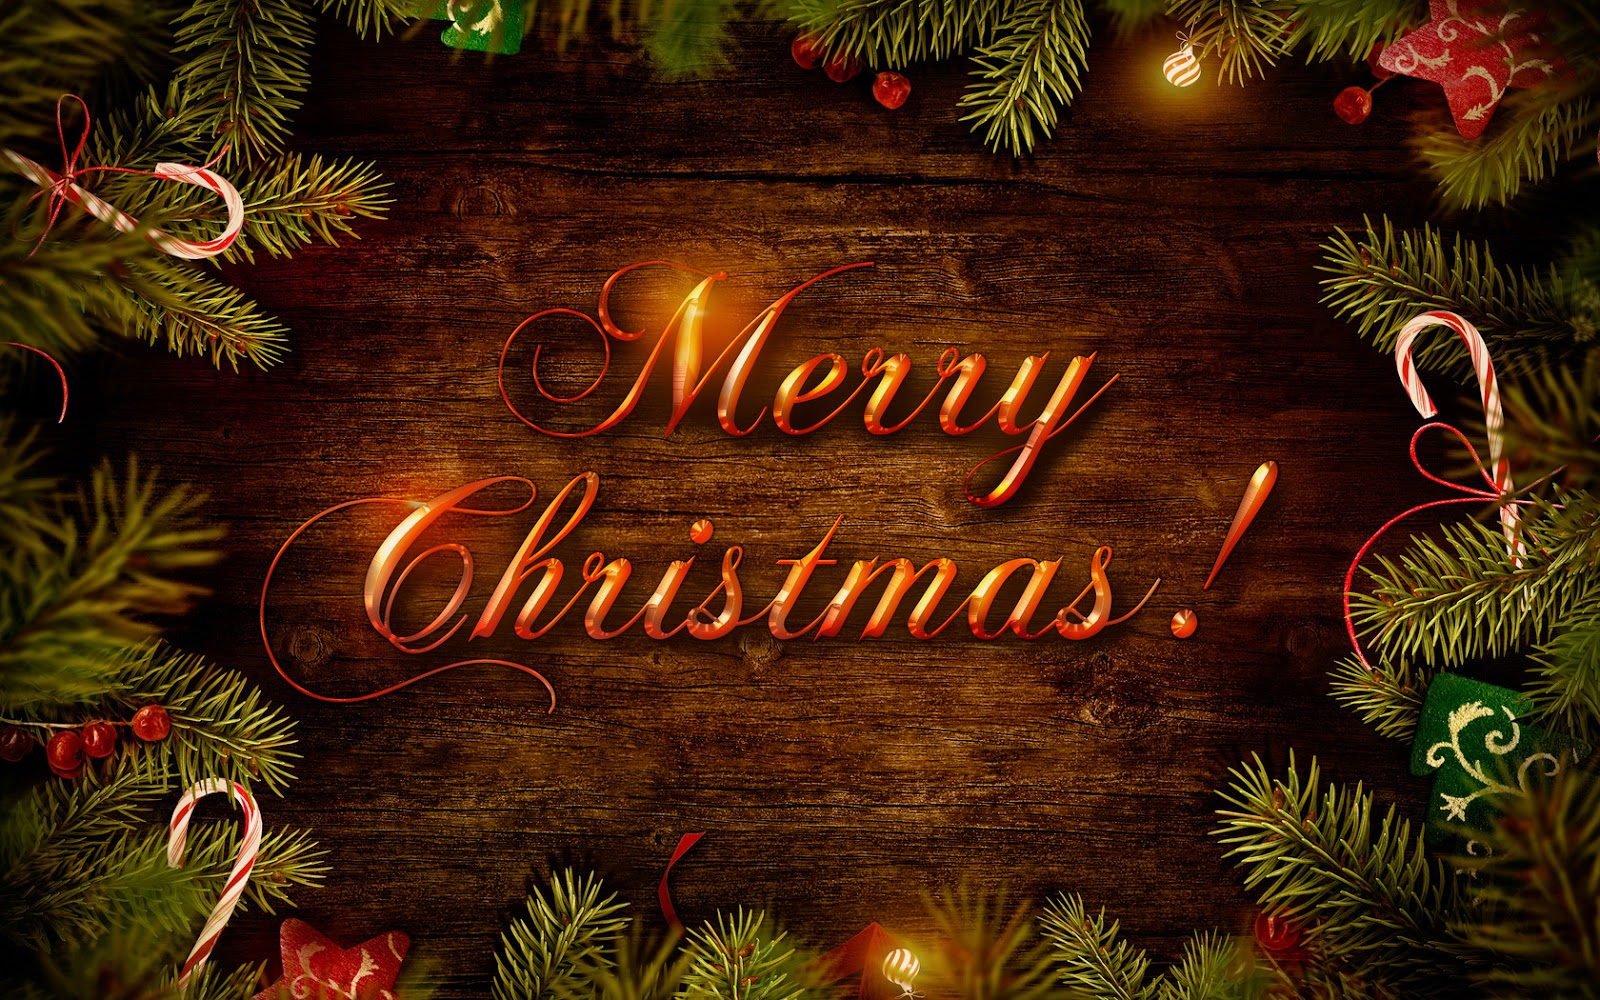 merry-christmas-1680x1050-wooden-board-theme-green-leaf-template.jpg